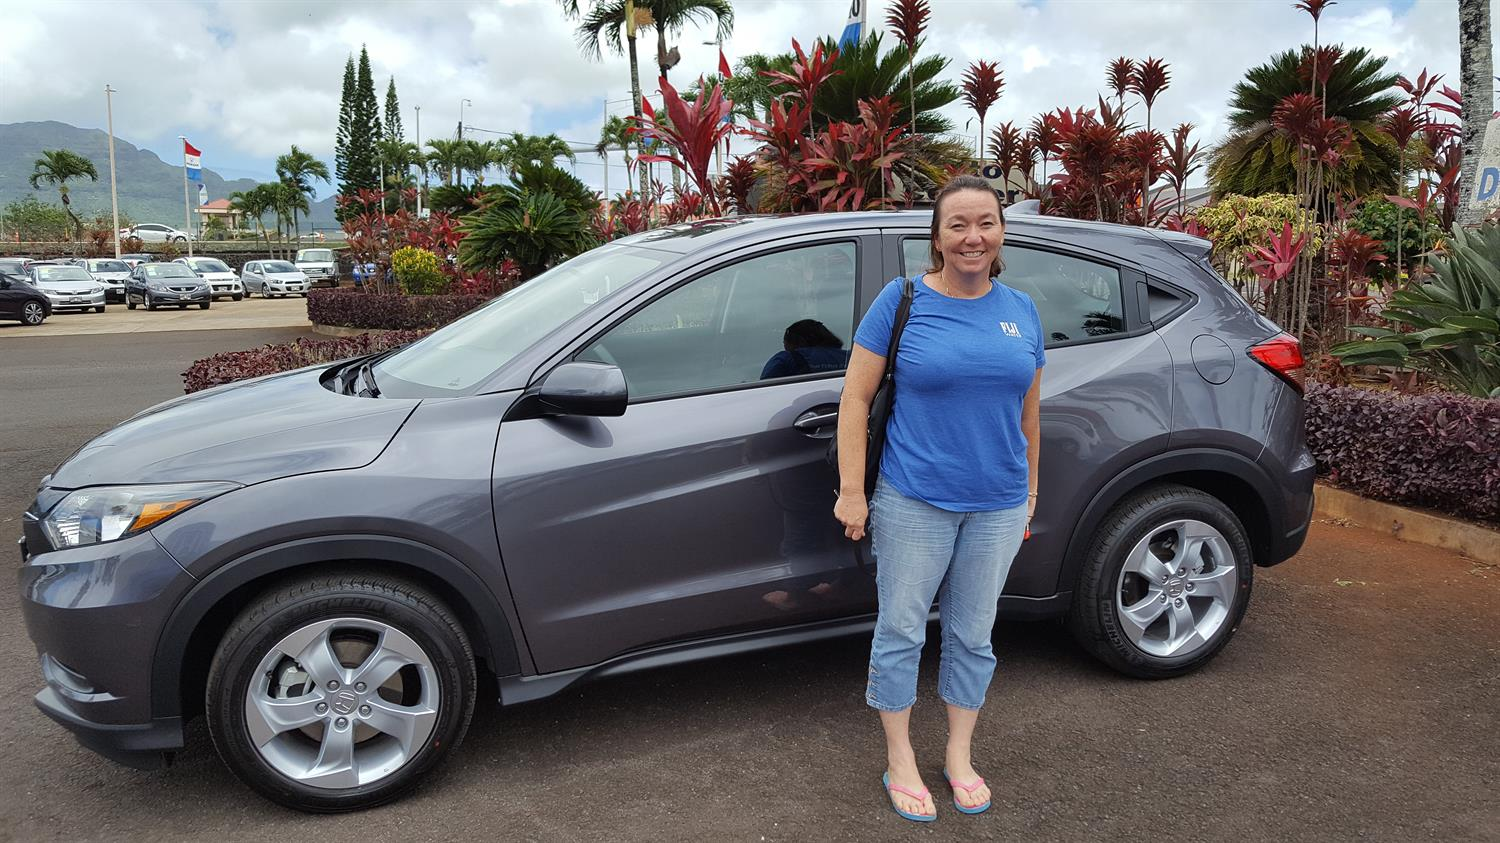 TERRY's new 2016 Honda Hrv! Congratulations and best